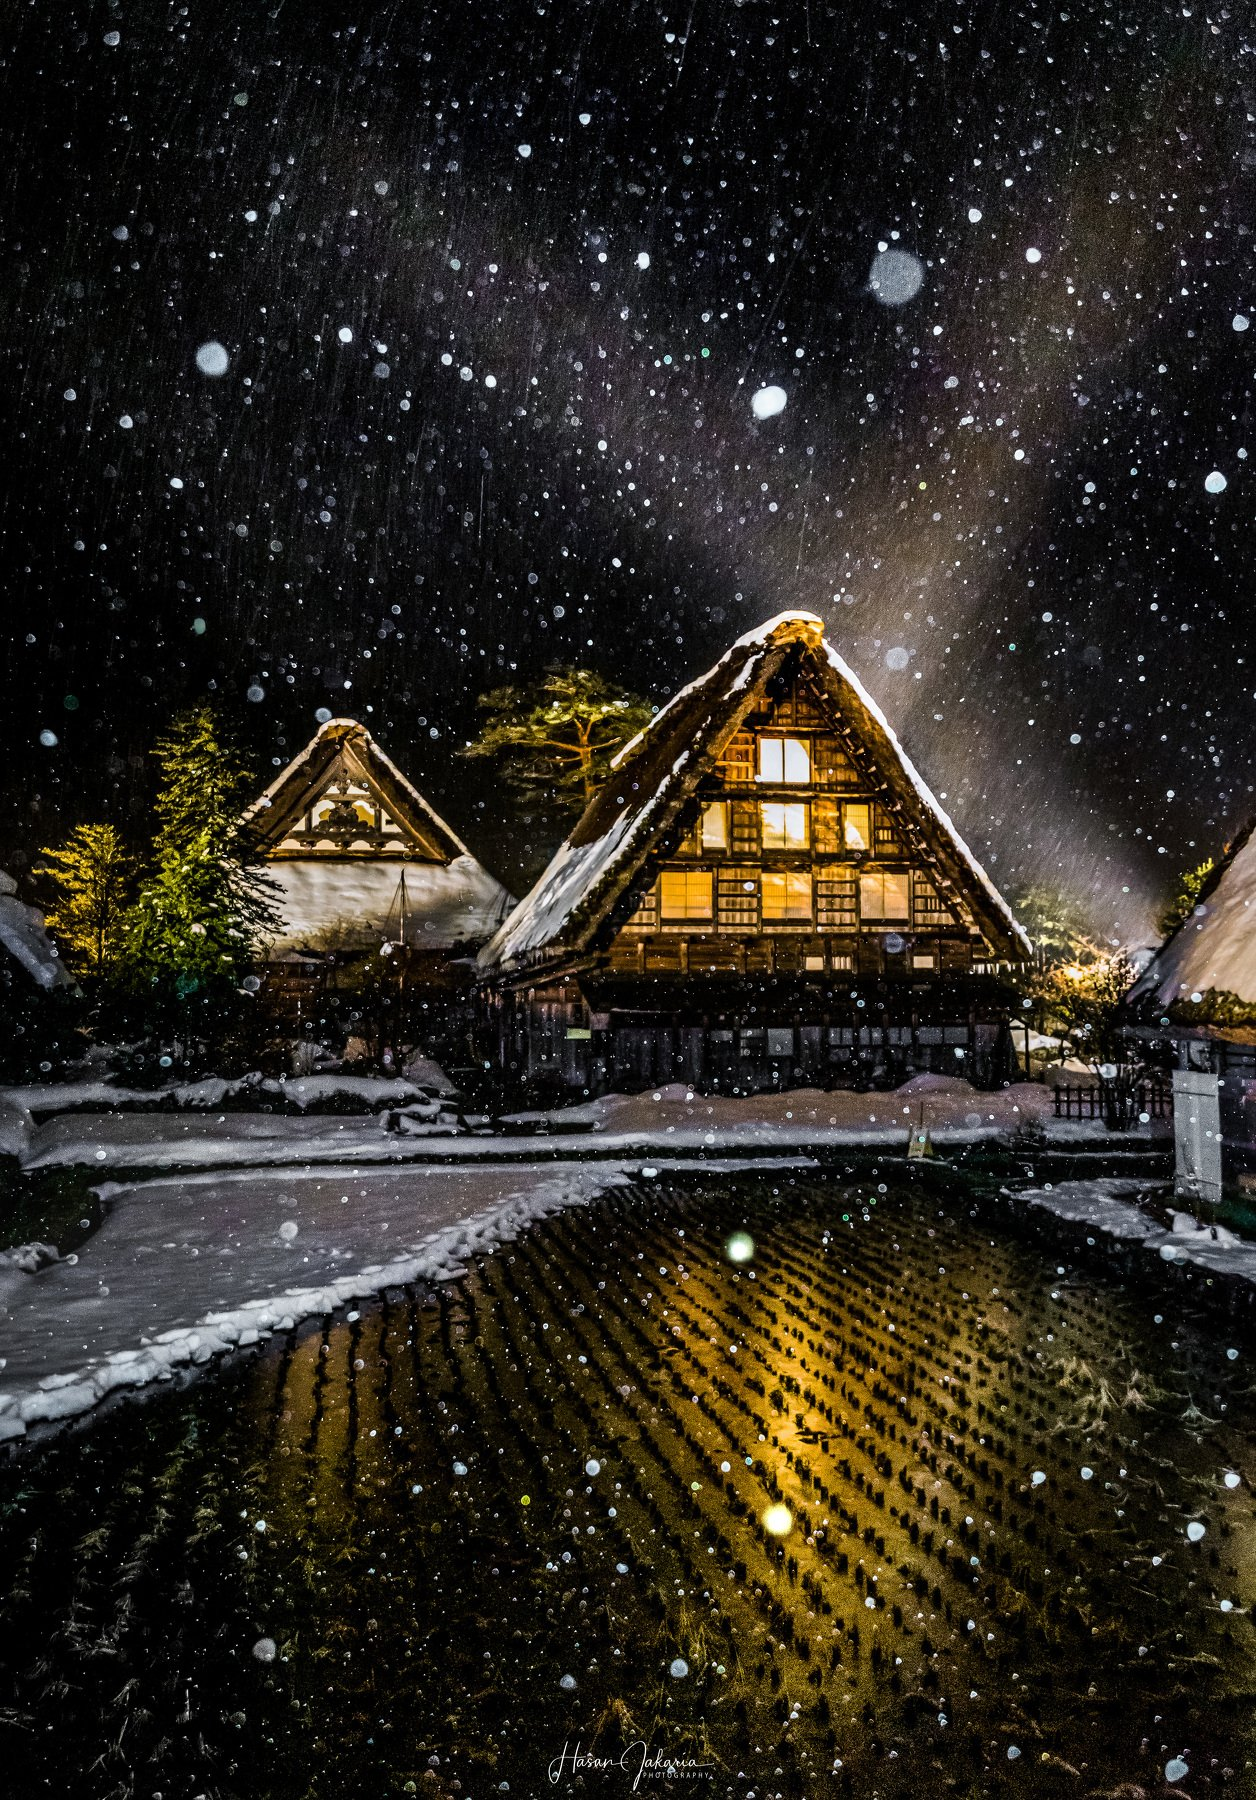 winter snow japan gifu night nightscape nature old house, Hasan Jakaria